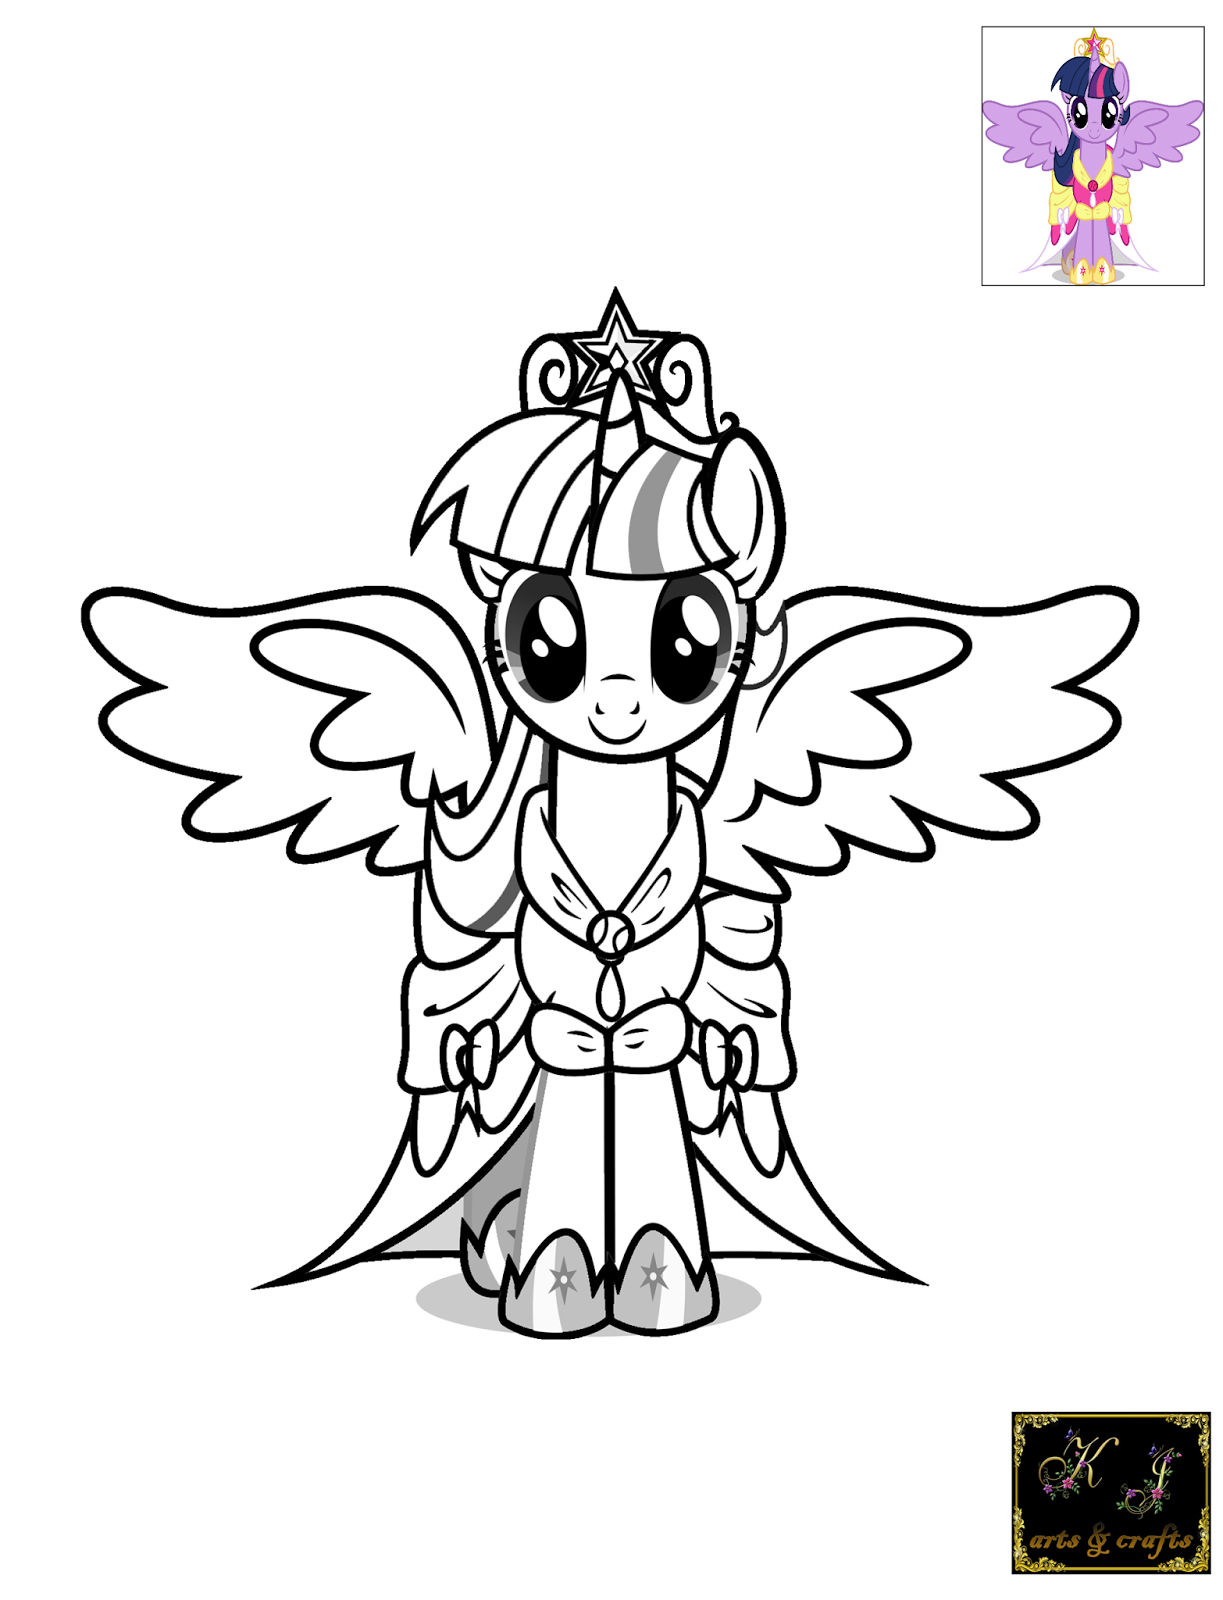 Adult Beauty Princess Twilight Sparkle Coloring Page Images best kj coloring pages twilight sparkle images